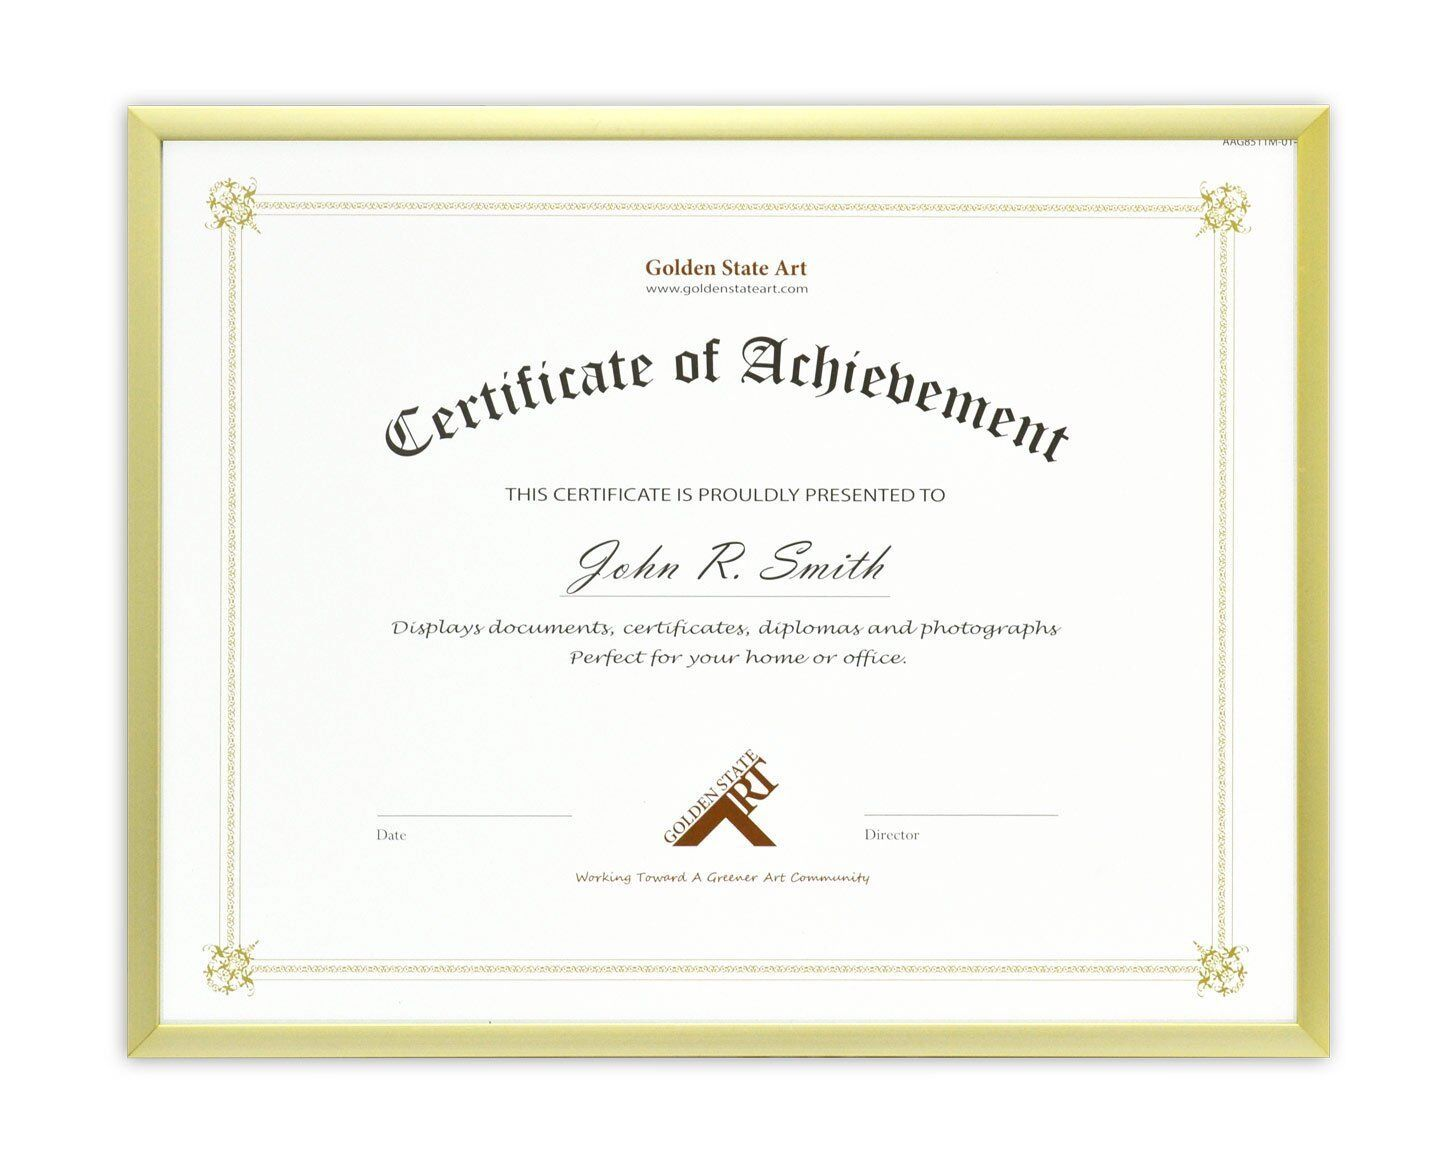 Document Diploma Certificate, 8.5x11 Aluminum Gold Photo Fra